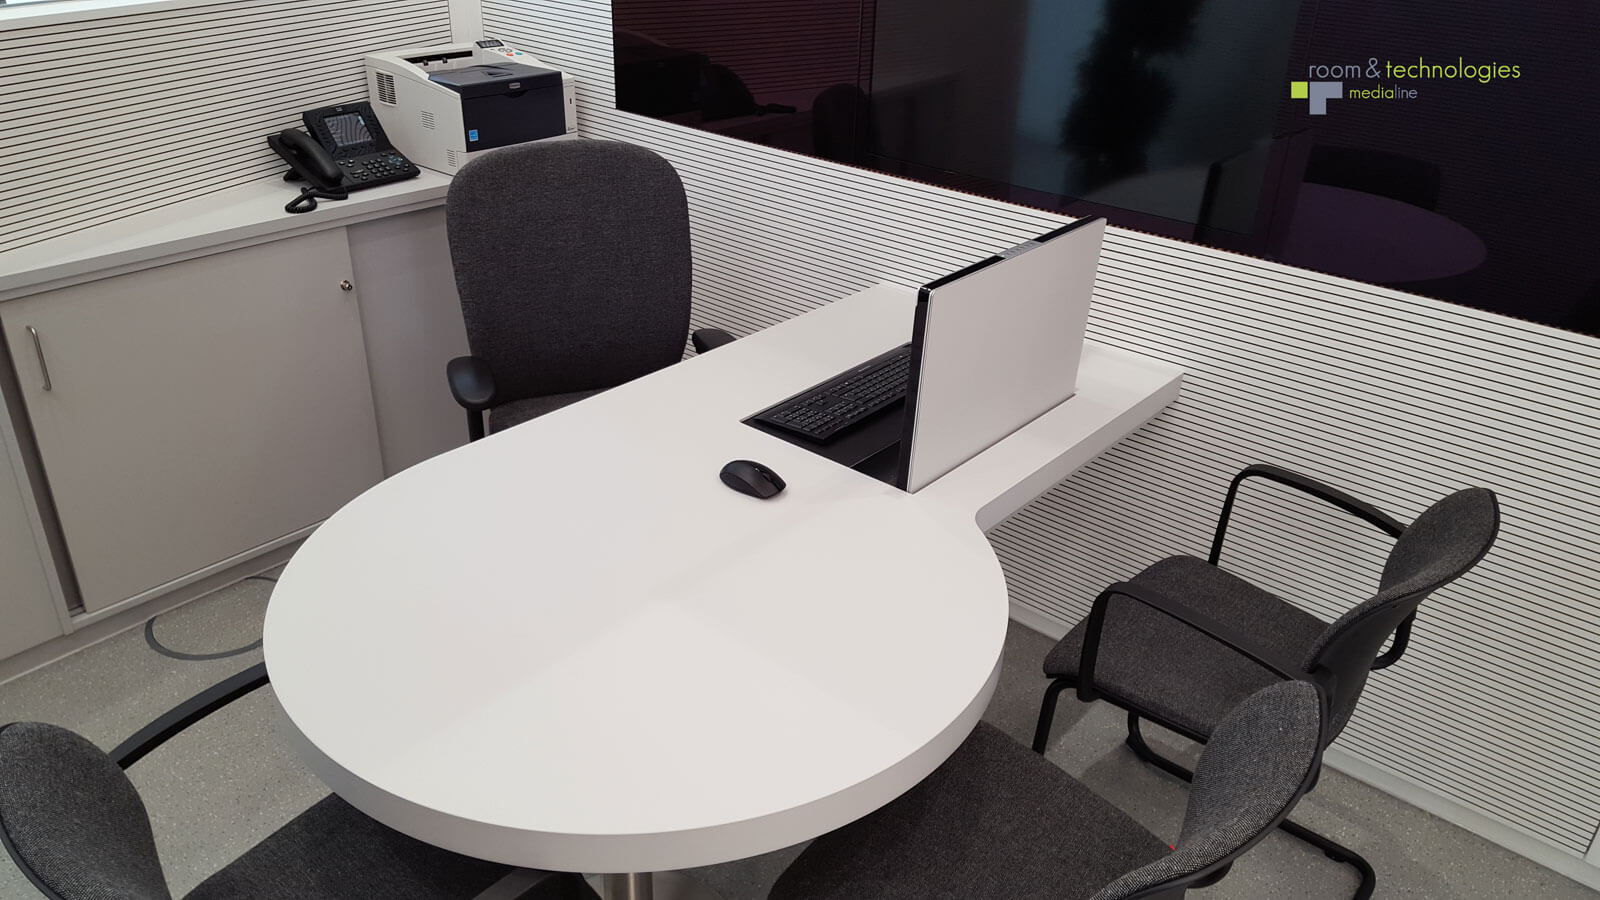 ELEMENT ONE pop-up monitor in desk